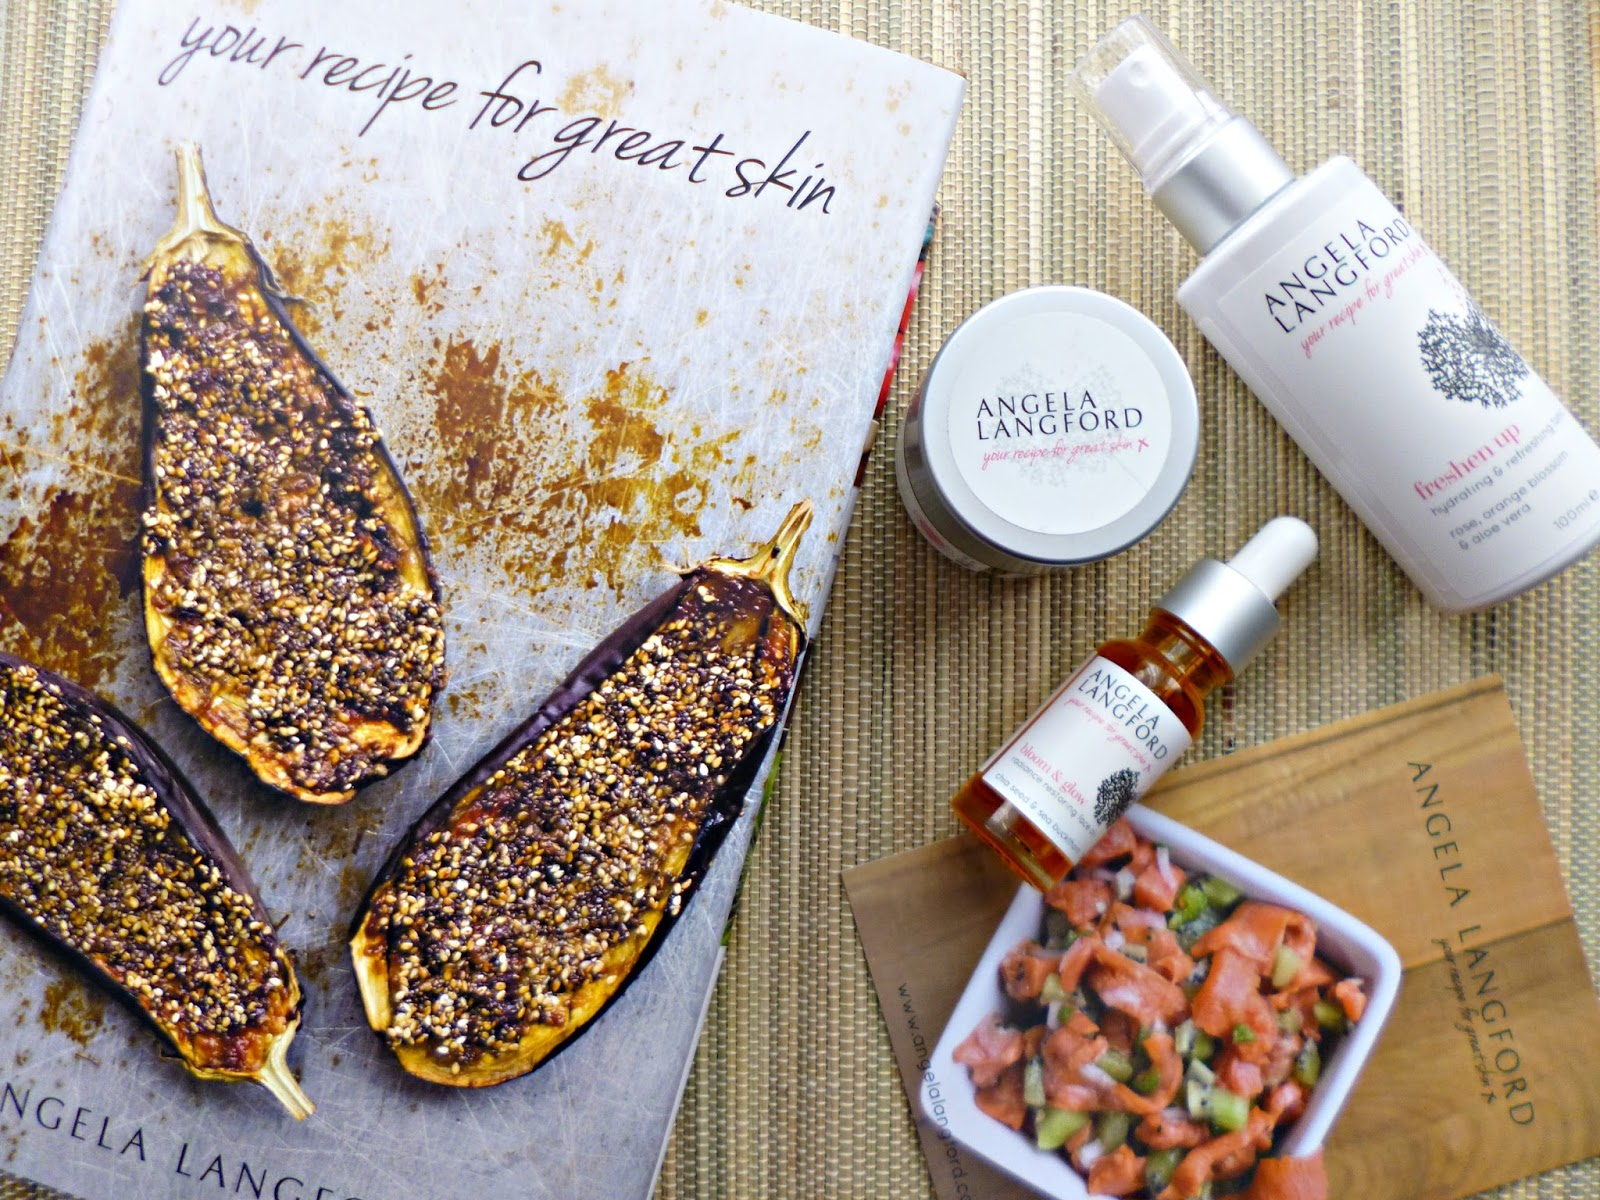 Angela Langford Skincare: Your recipe for great skin